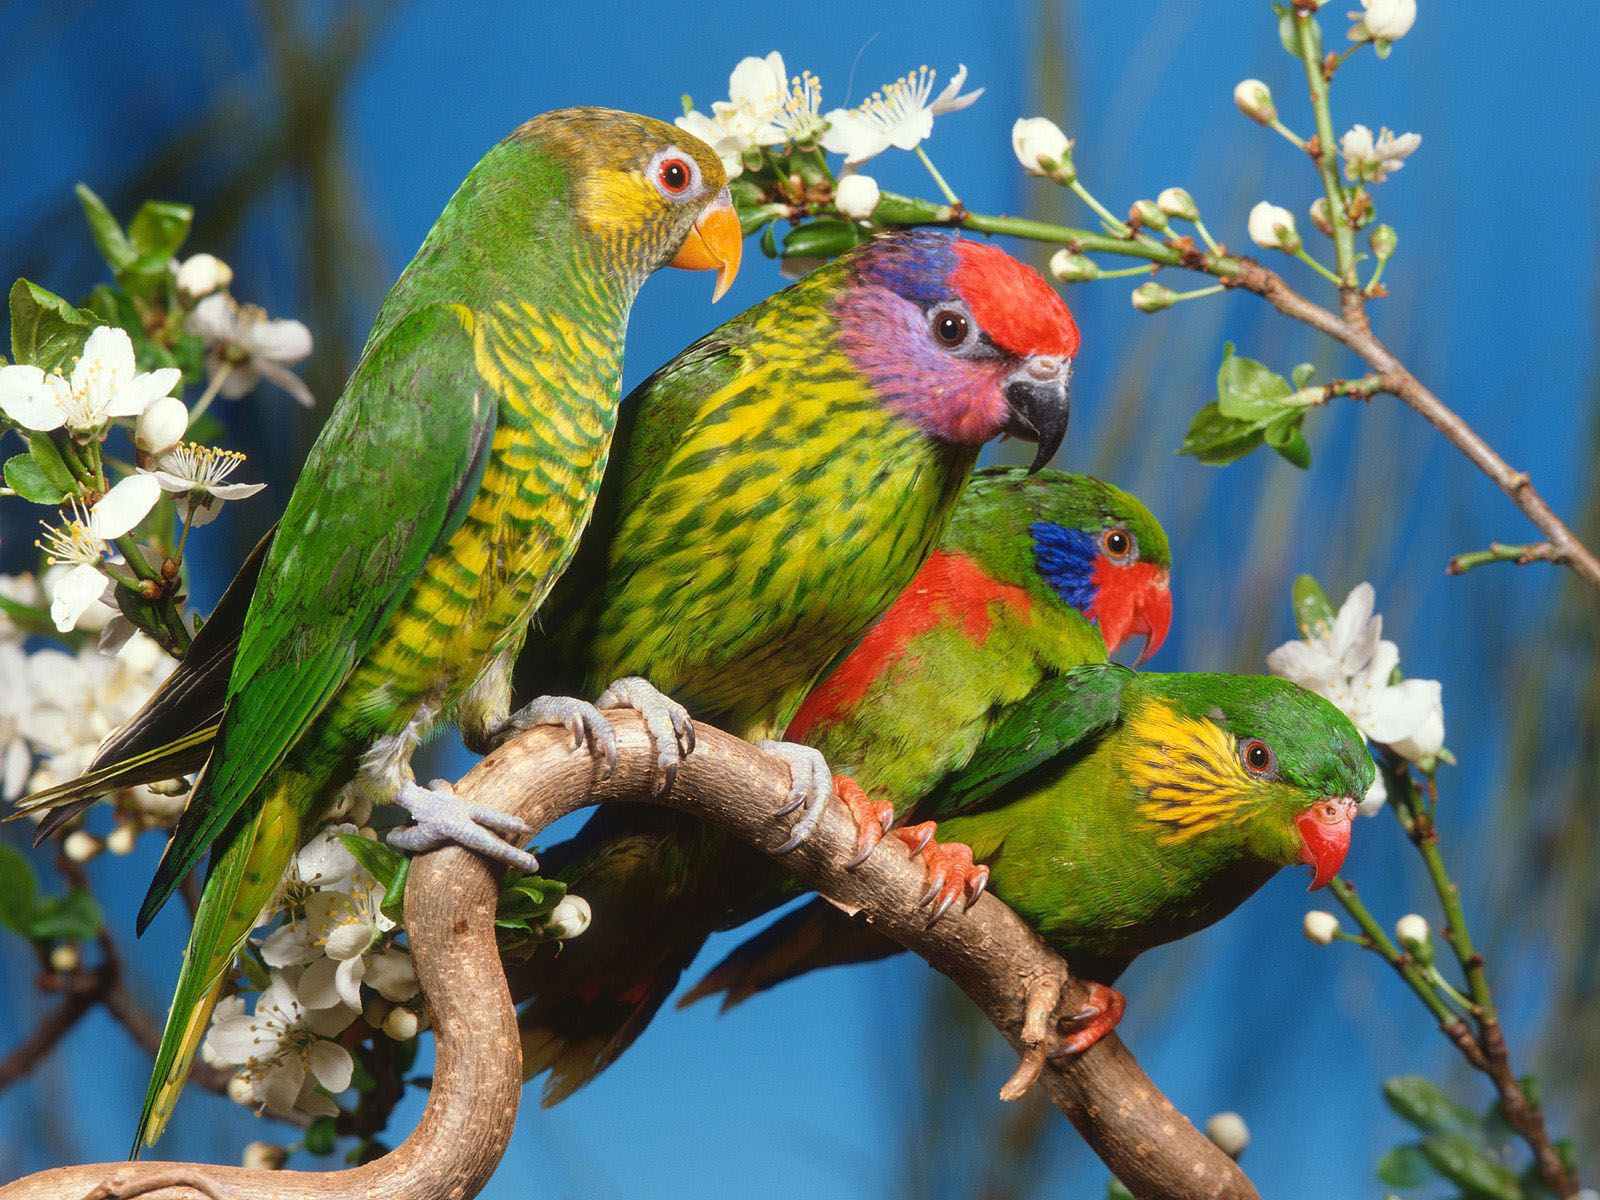 Four Colorful Birds On A Branch Wallpaper 1600x1200